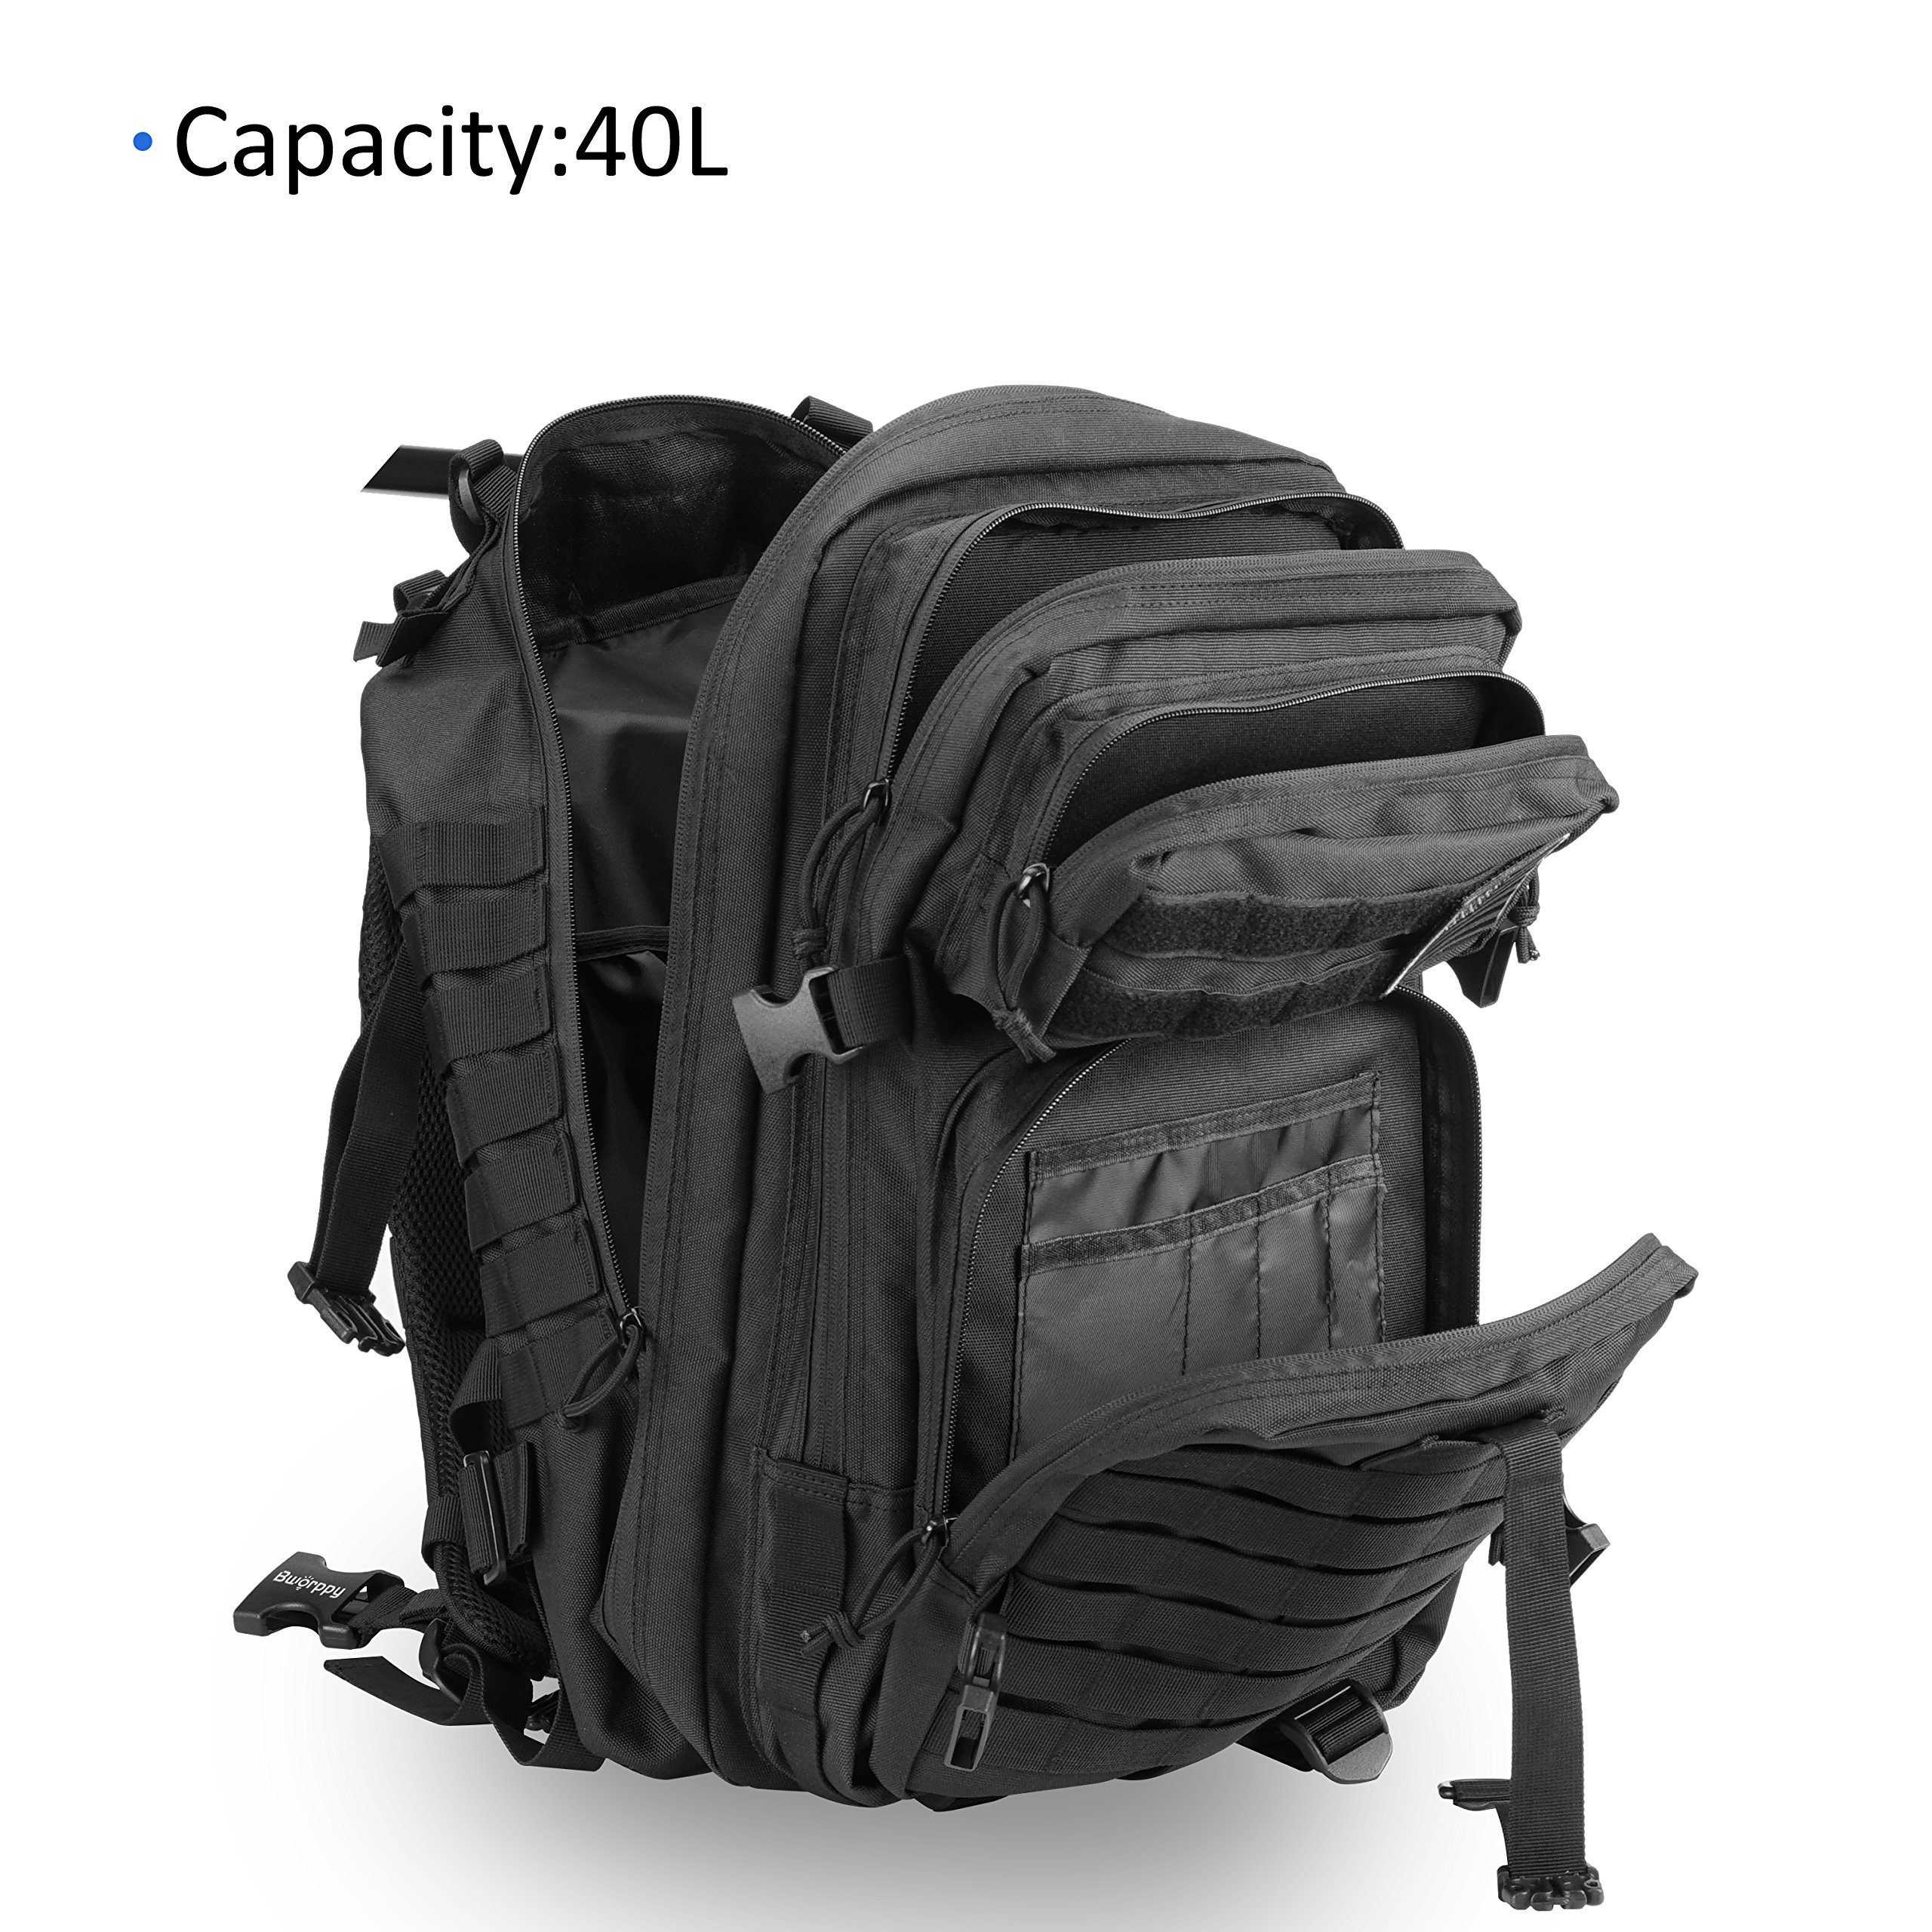 Bworppy Military Tactical Backpack, 40L Outdoor Rucksack, Waterproof 900D Oxford Fabric Assault Pack for Outdoor Hiking Camping Trekking Hunting by Bworppy (Image #5)